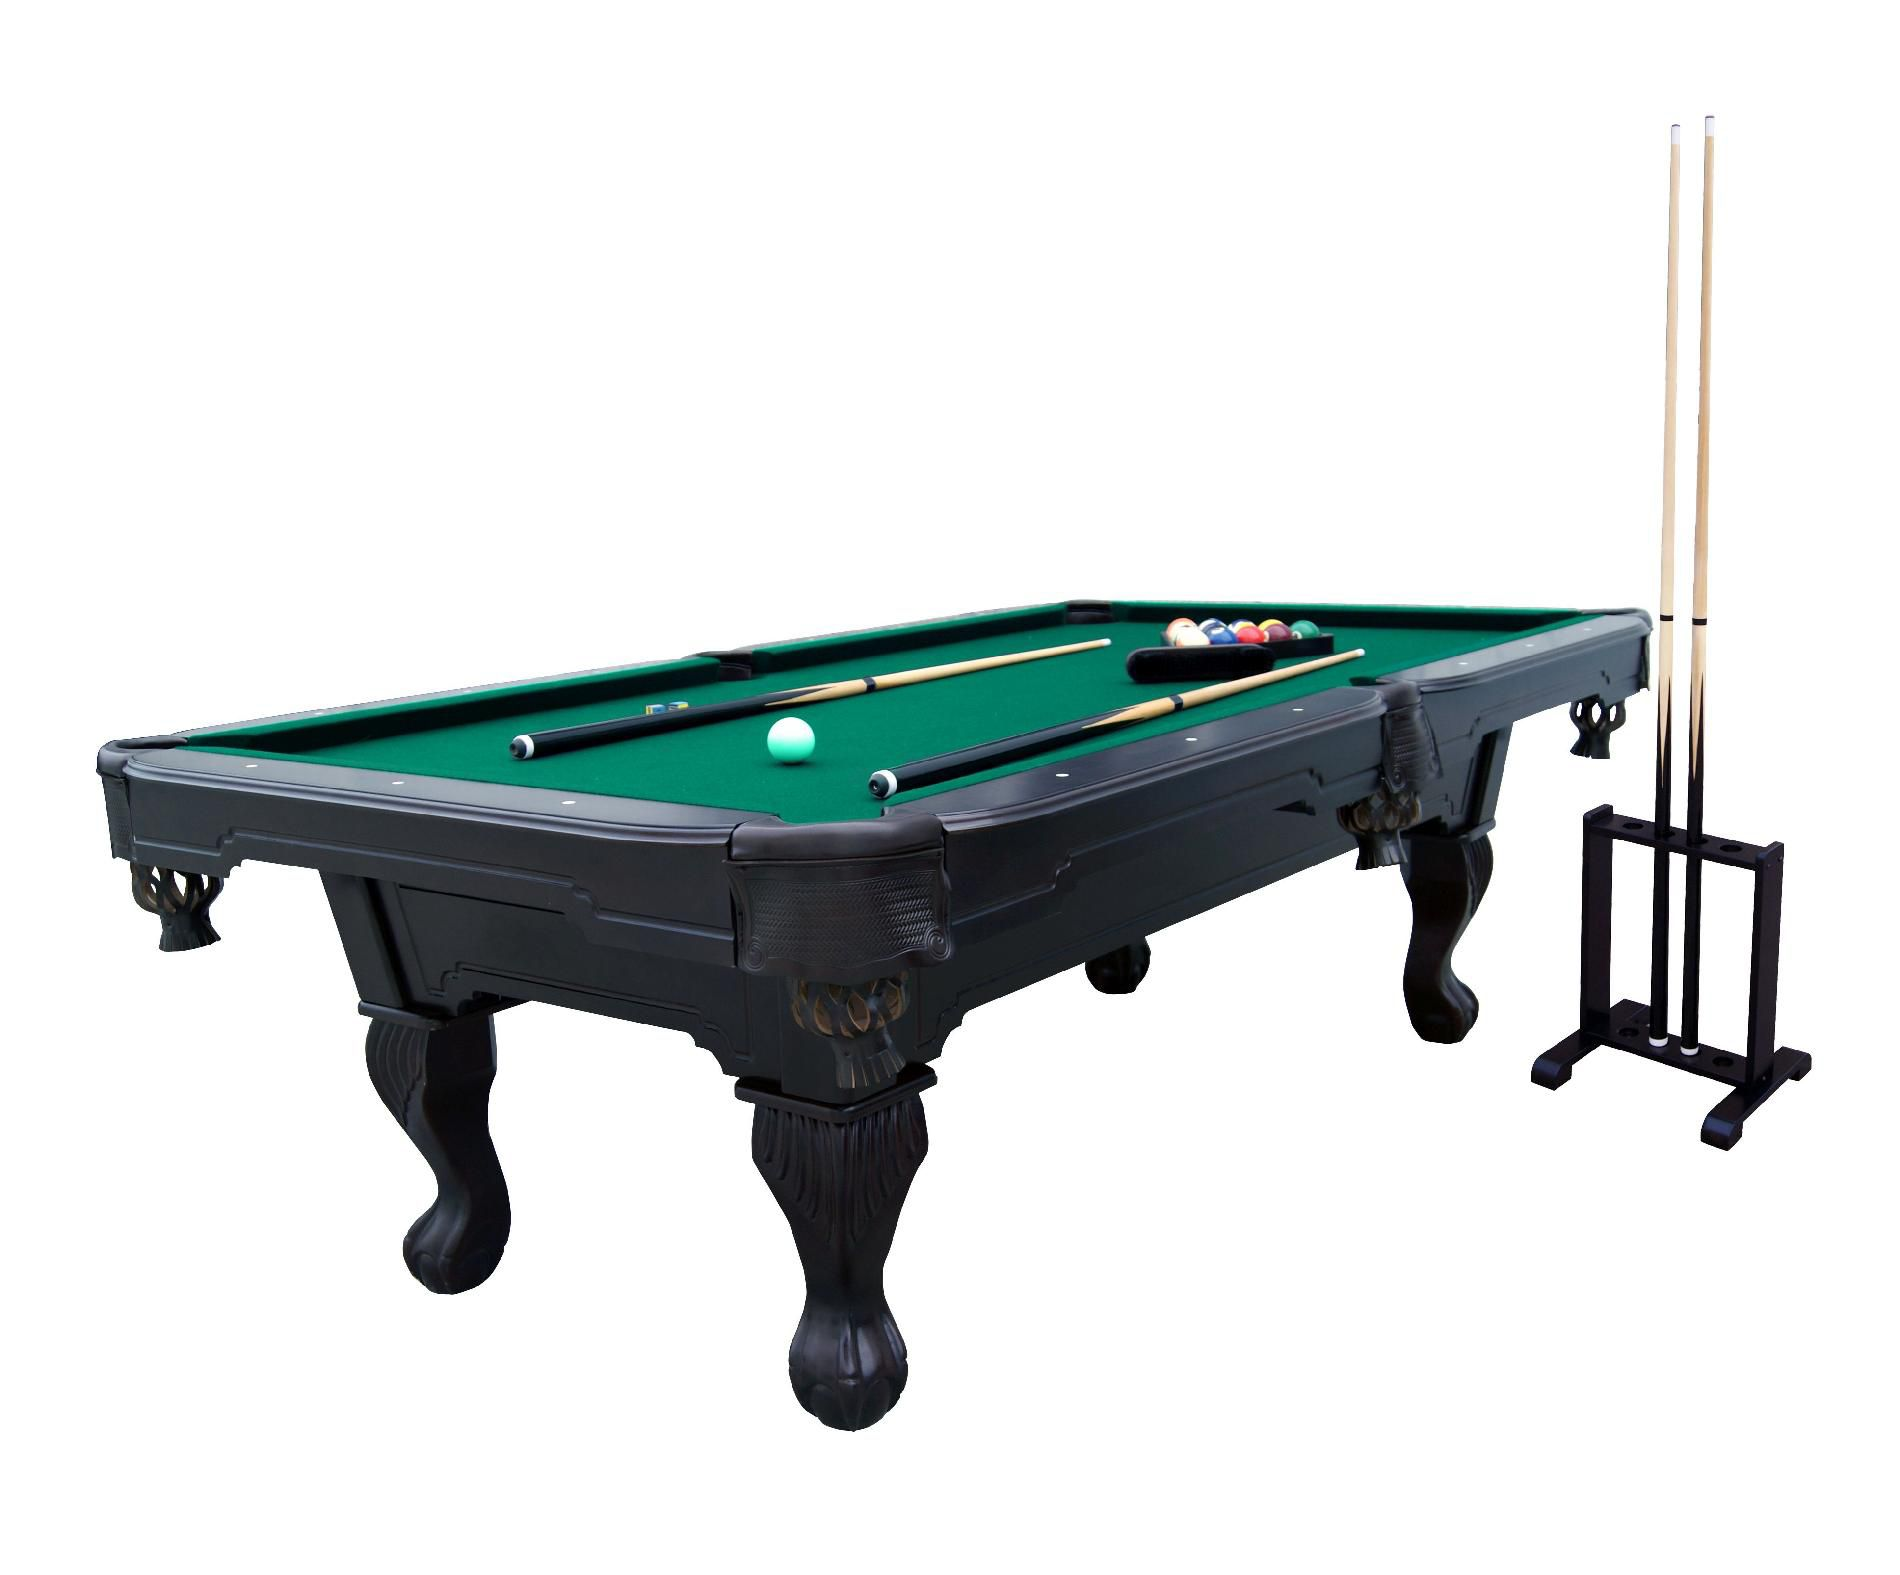 MD Sports Woodfield 8' Billiard Leg - TABLE SOLD SEPARATELY